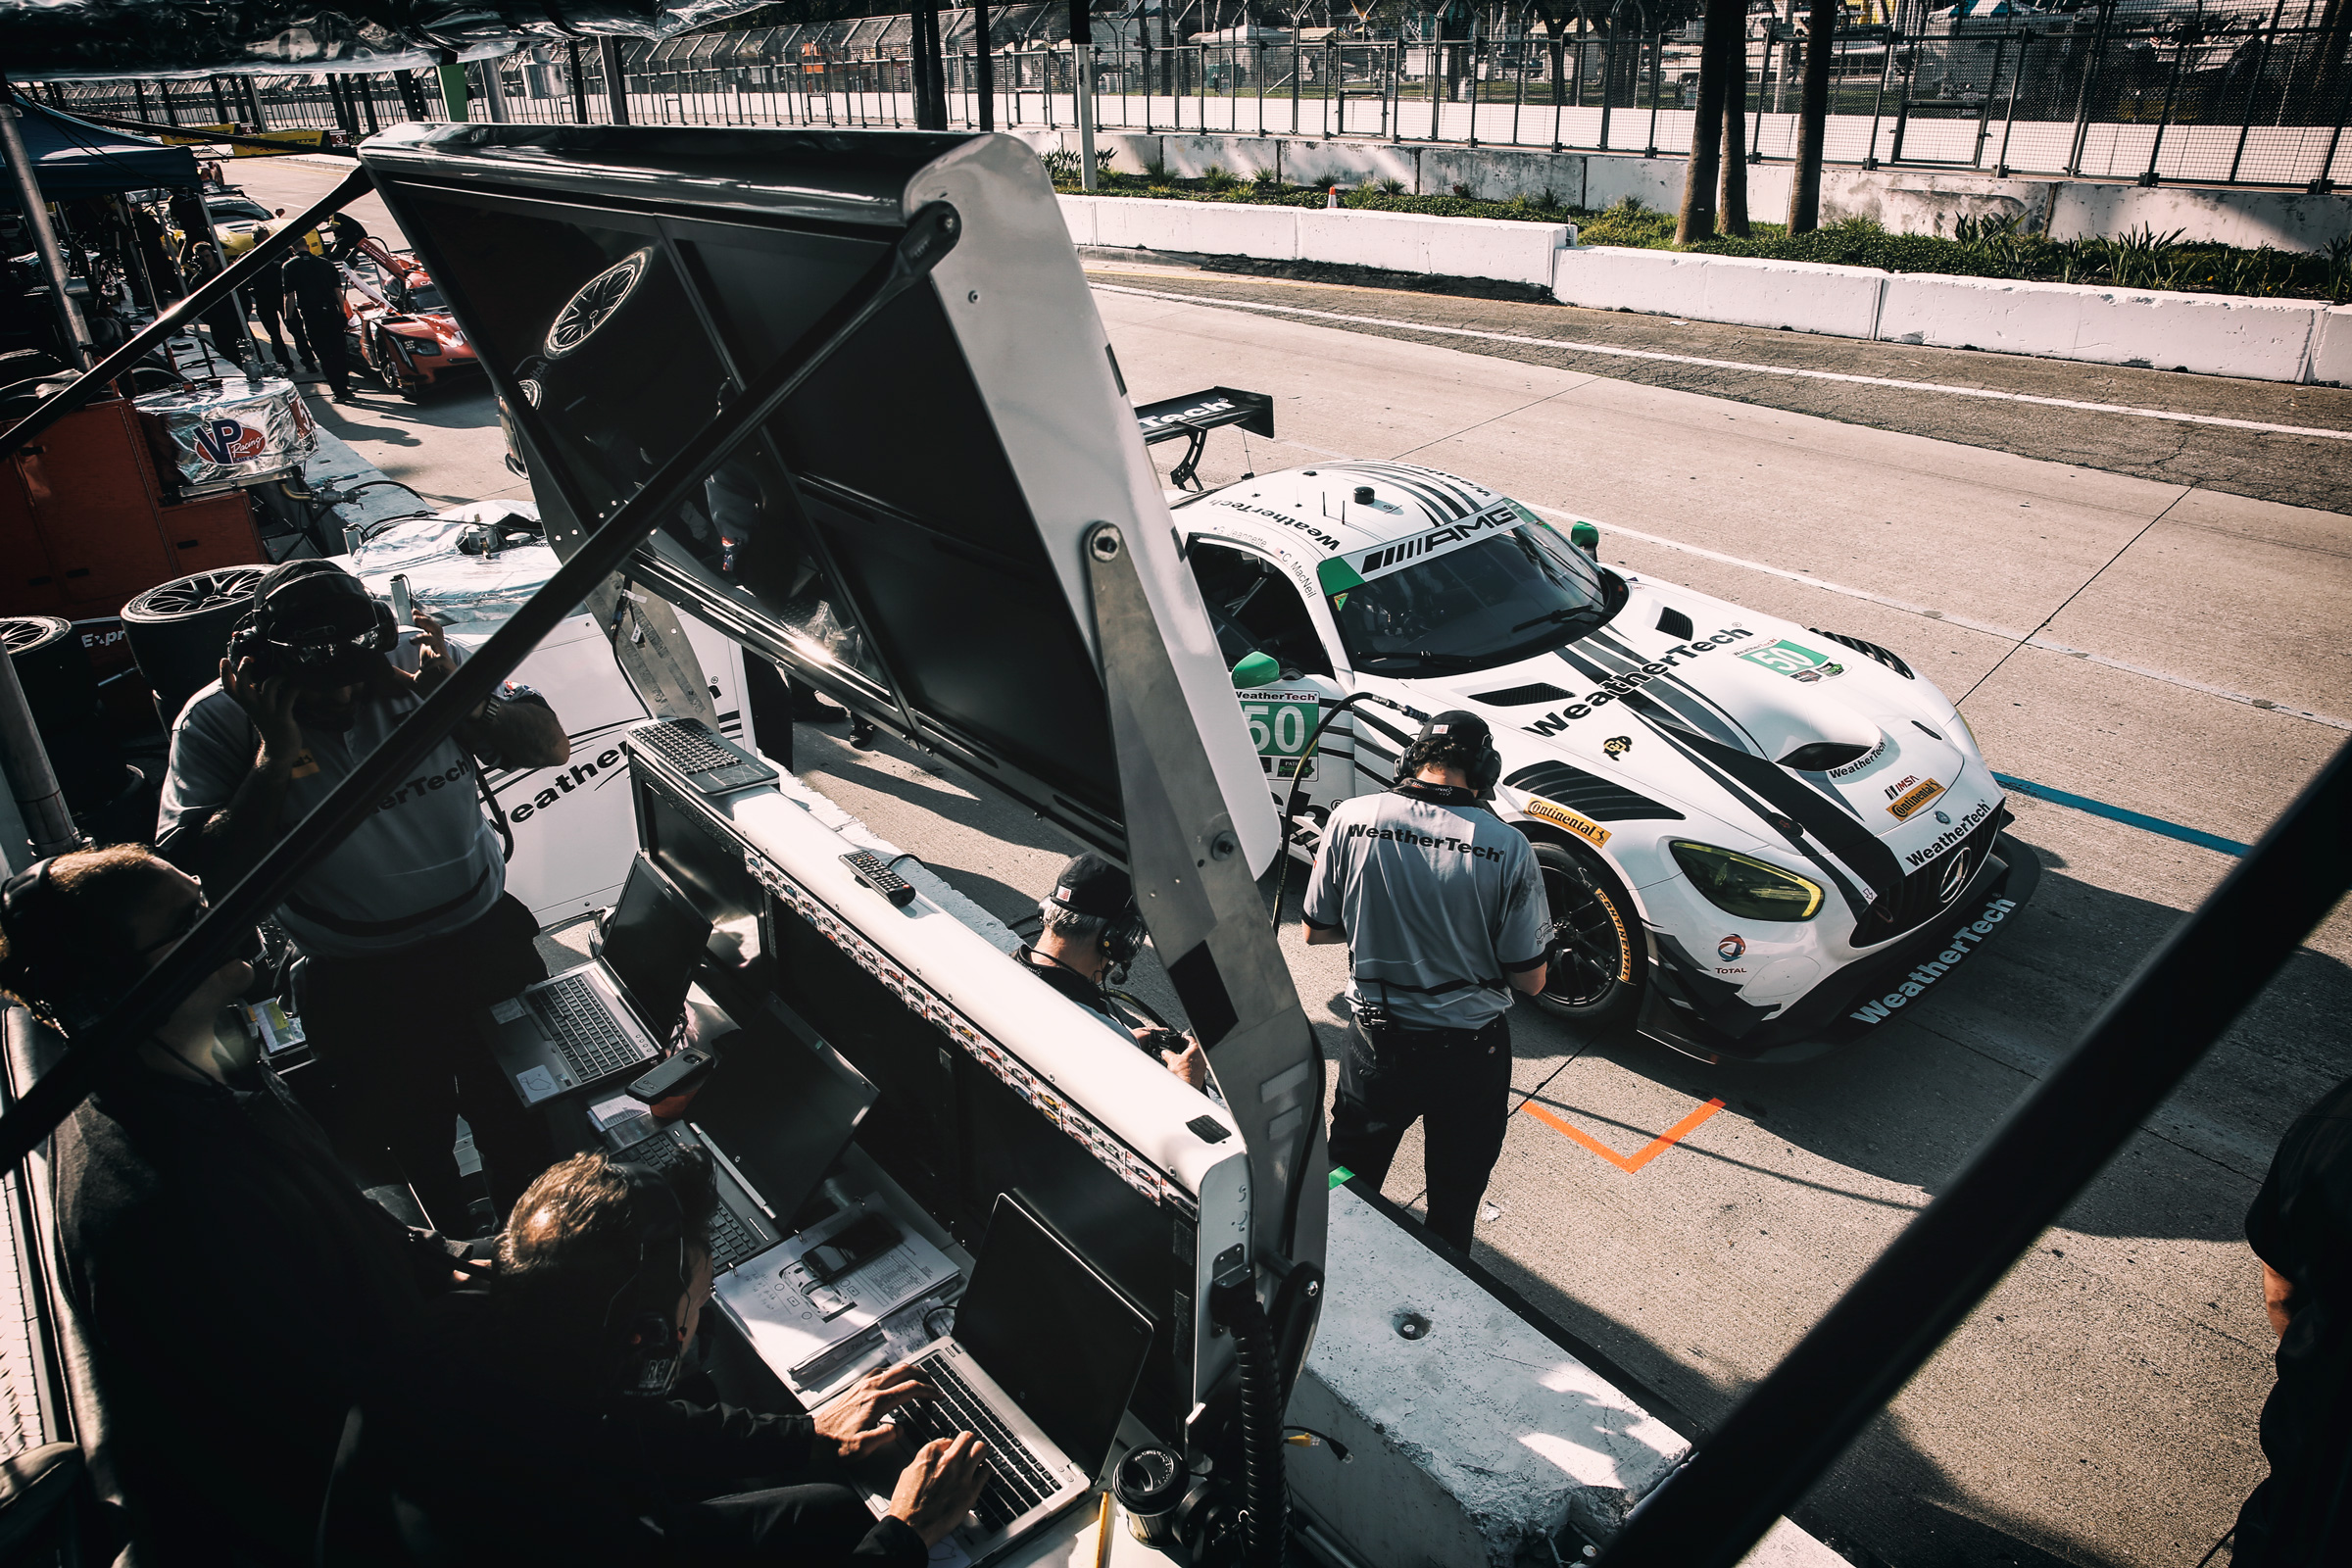 Weathertech Mercedes AMG-GT3 by Riley Motorsports in der Boxengasse in Long Beach, Los Angeles. Weathertech Mercedes AMG-GT3 of Riley Motorsports in the pitlane of Long Beach, Los Angeles.